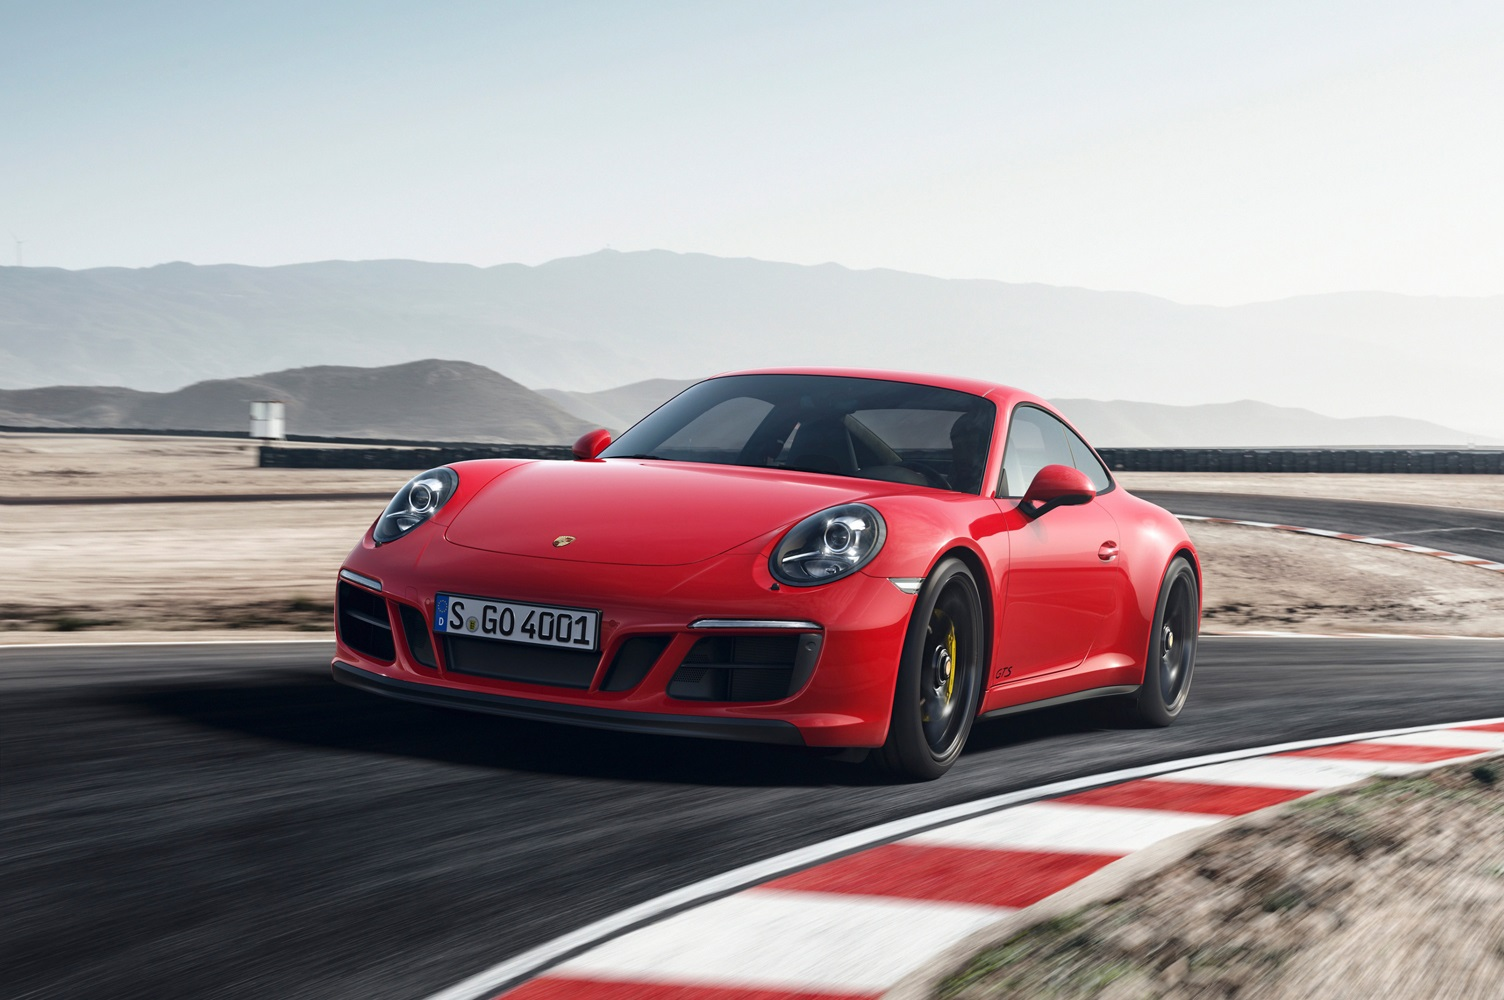 Porsche pictures of porsches : Two new Porsche 911 variants will give enthusiasts more power to ...